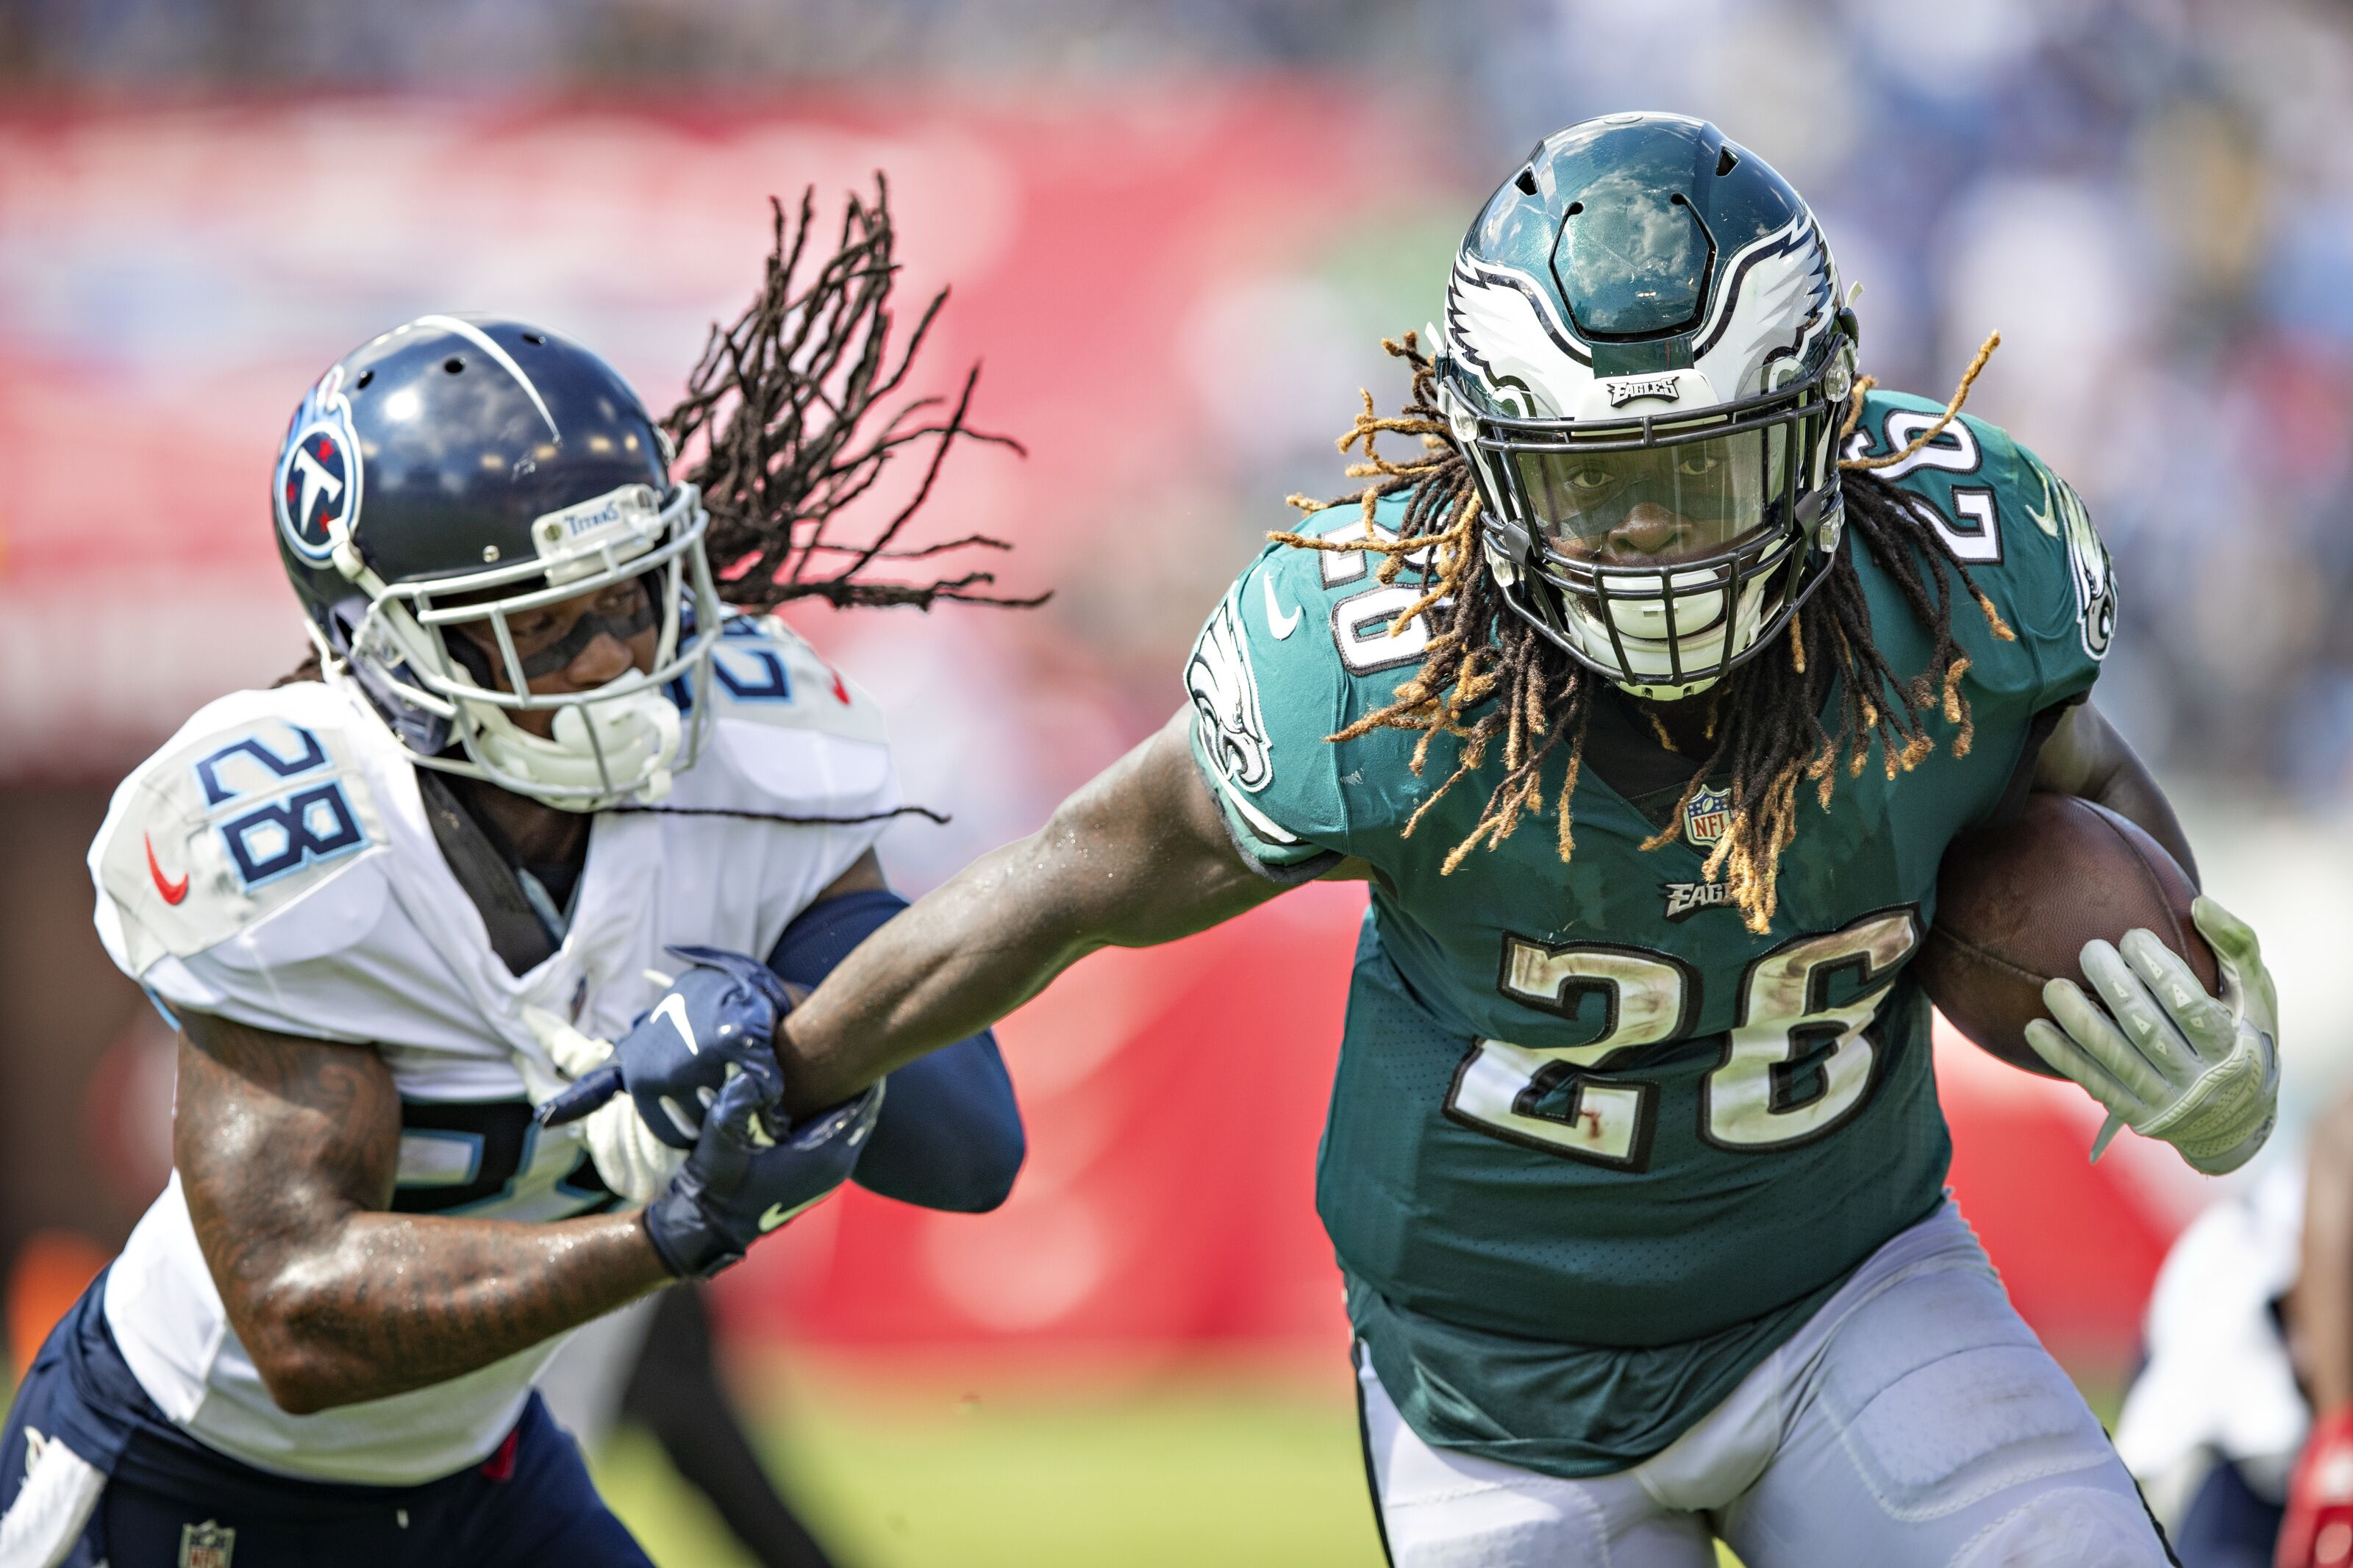 NASHVILLE, TN - SEPTEMBER 30: Jay Ajayi #26 of the Philadelphia Eagles runs the ball and is grabbed by Kendrick Lewis #28 of the Tennessee Titans at Nissan Stadium on September 30, 2018 in Nashville, Tennessee. The Titans defeated the Eagles in overtime 26-23. (Photo by Wesley Hitt/Getty Images)